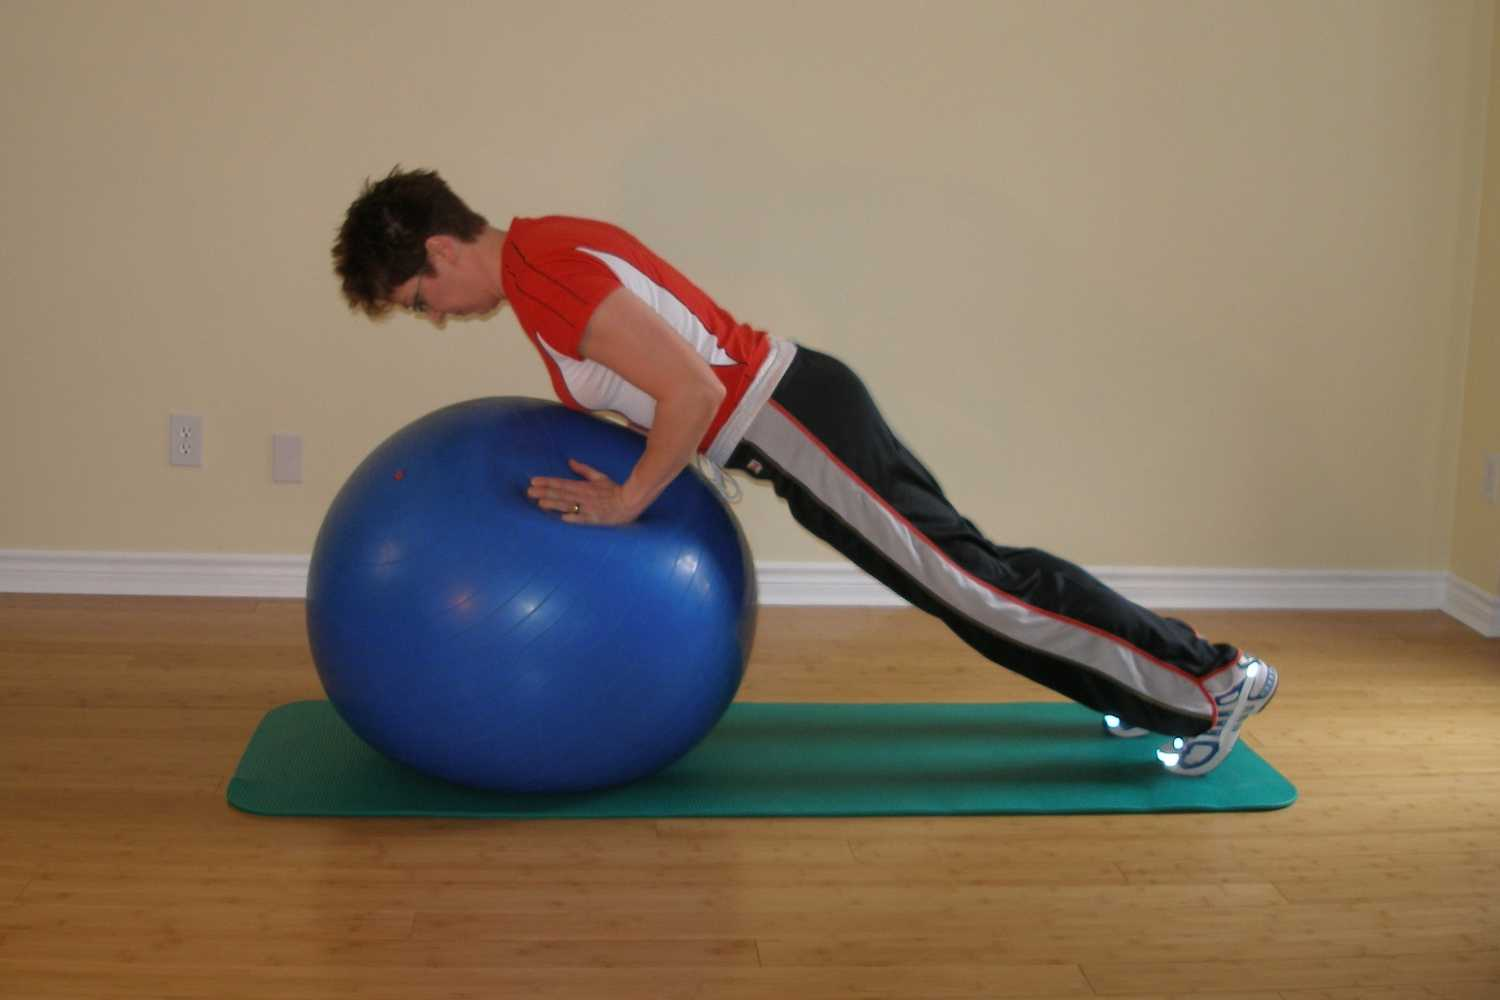 Standard push-up plus on exercise ball start